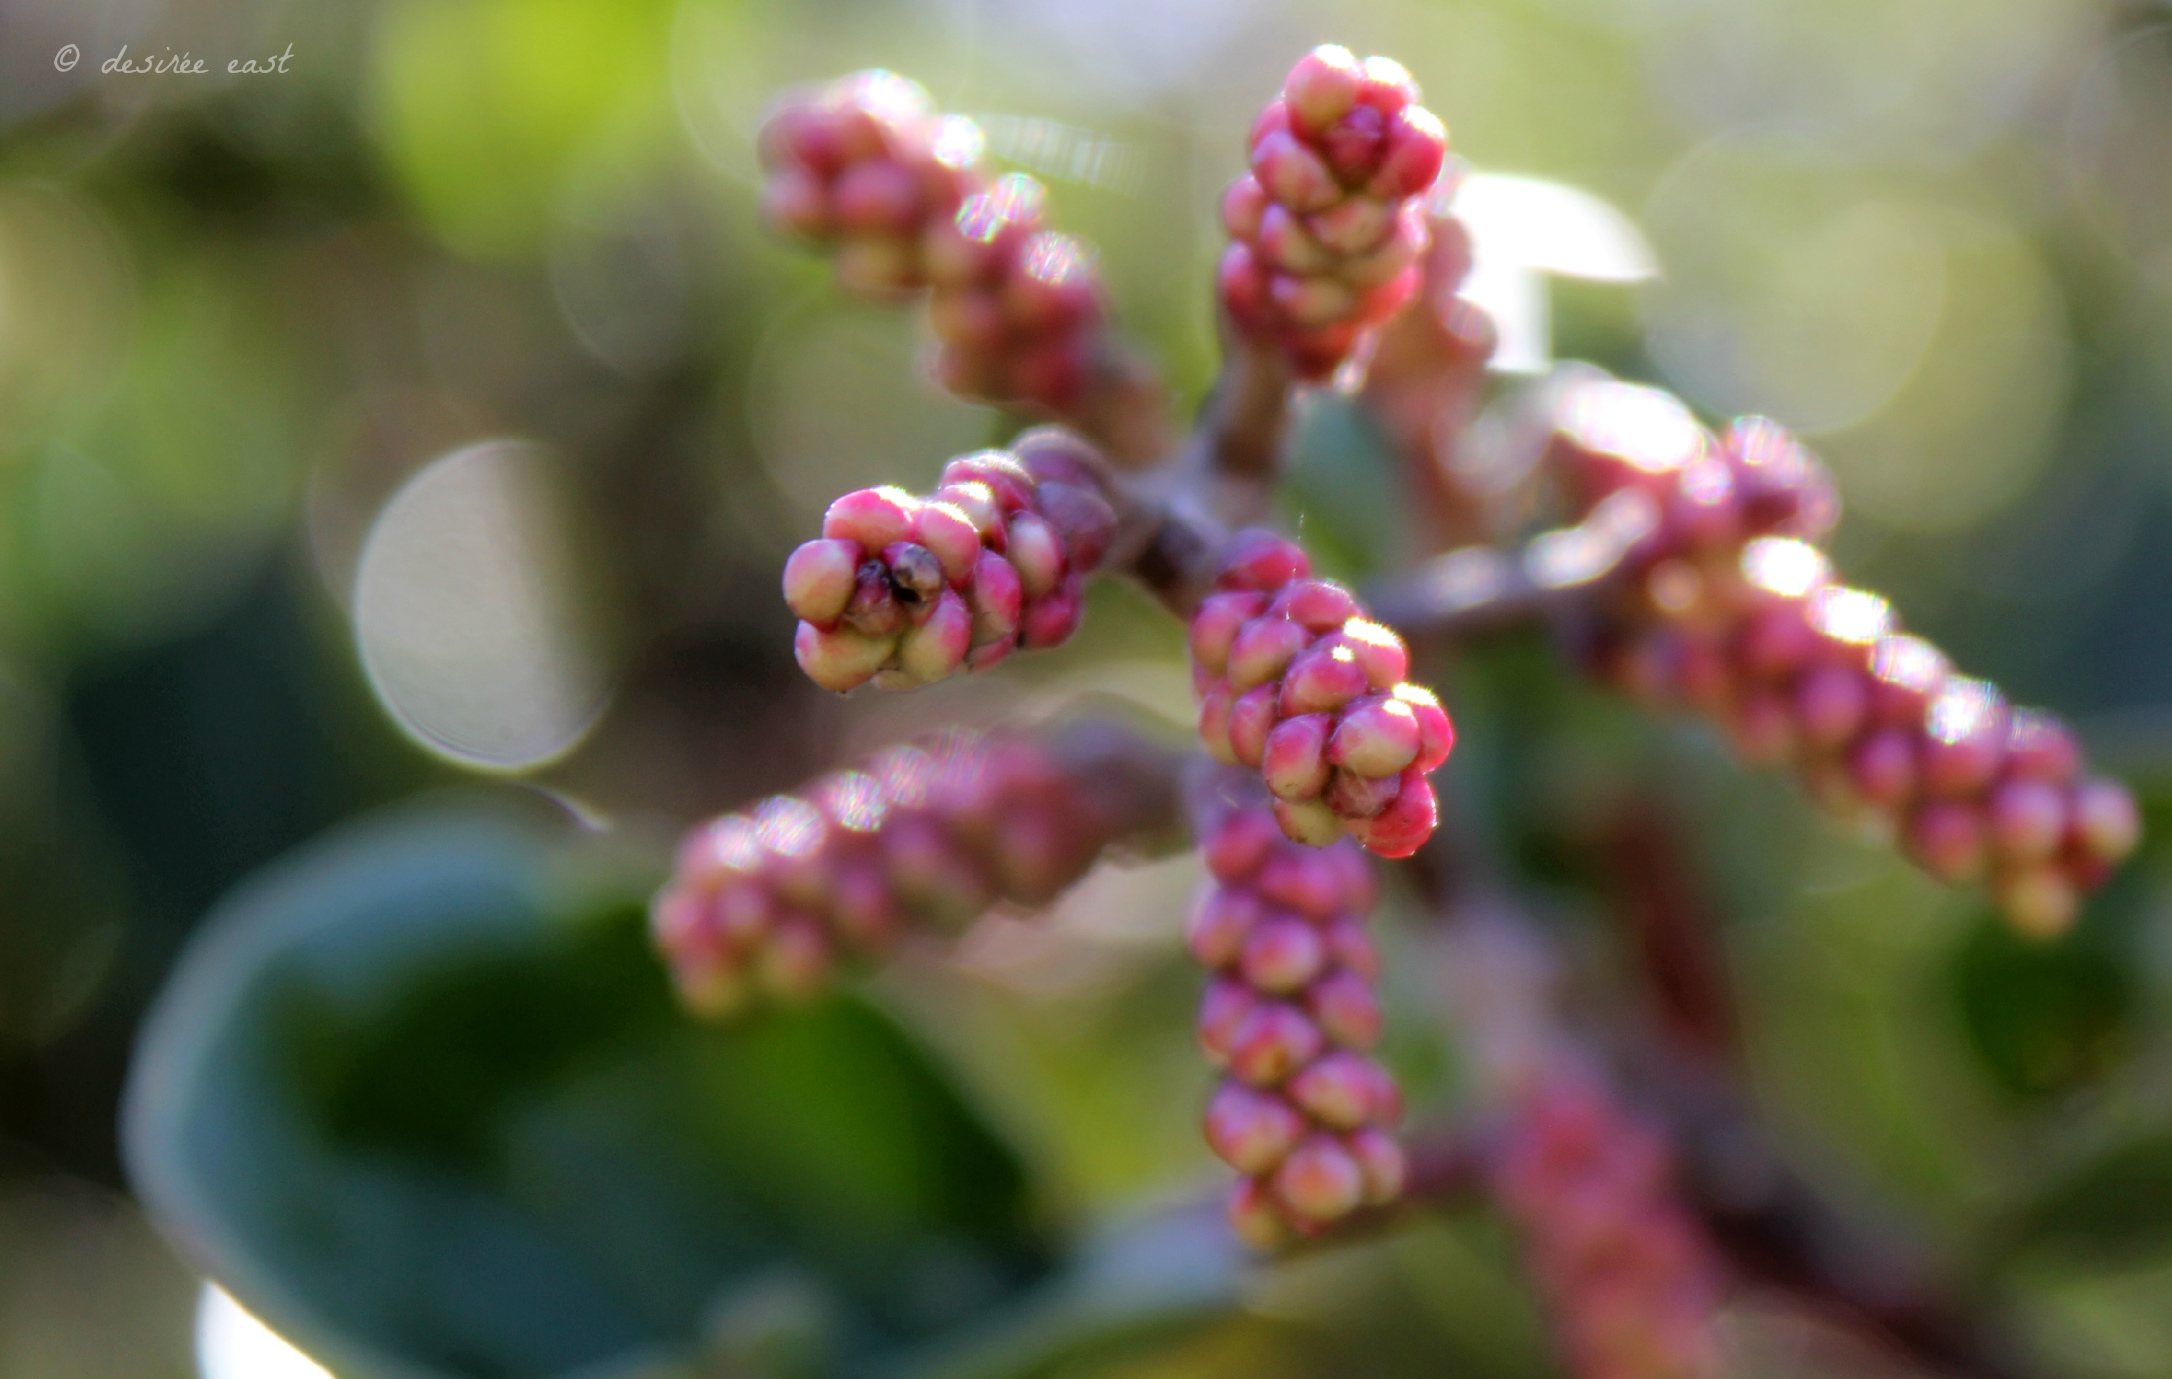 wordpress weekly photo challenge -  lost in the details - rhus integrifolia - lemonade berry - photo by desiree east (2)